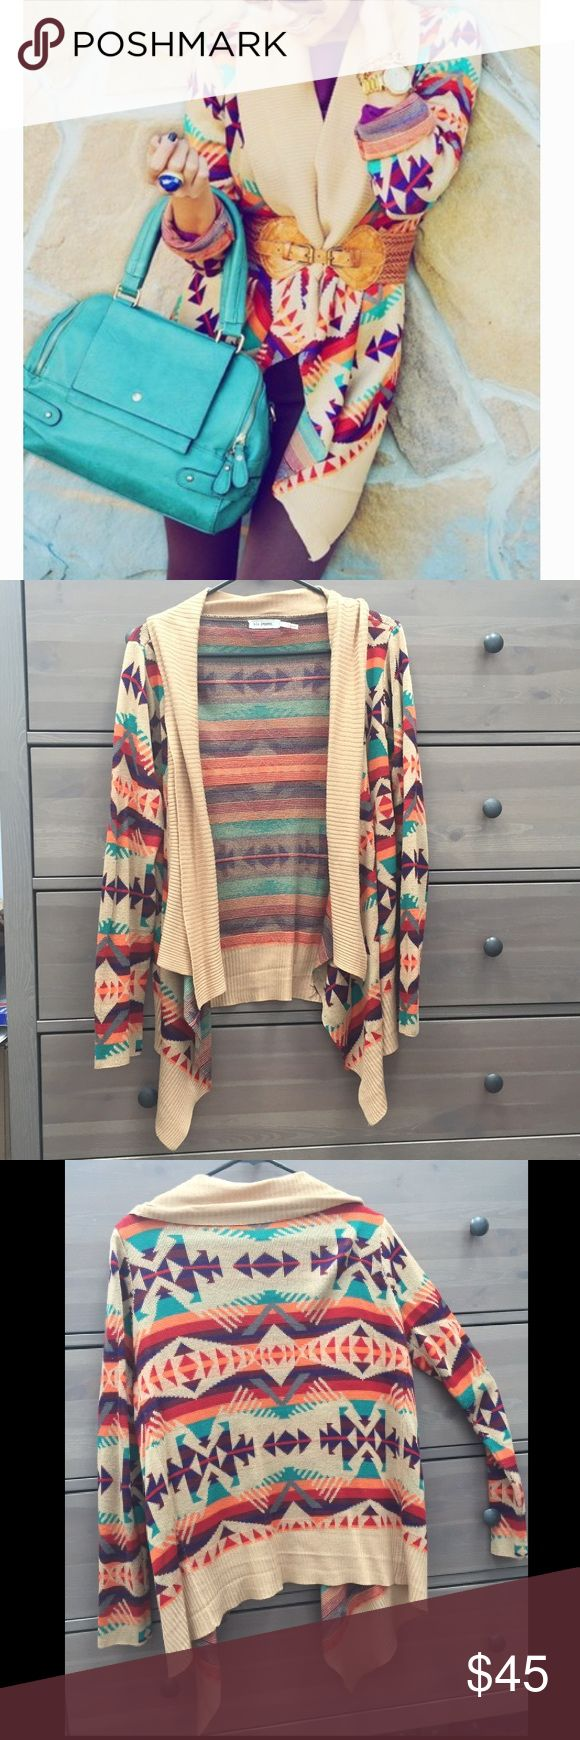 Colorful Aztec print cardigan from Blu Pepper Great condition. I love this sweater but the color scheme doesn't look as great on me as I'd hoped. Size is small, but it is flowy and would definitely fit a Med or maybe L. No buttons or closures but looks great under a belt or as a wrap. Blu Pepper Sweaters Cardigans